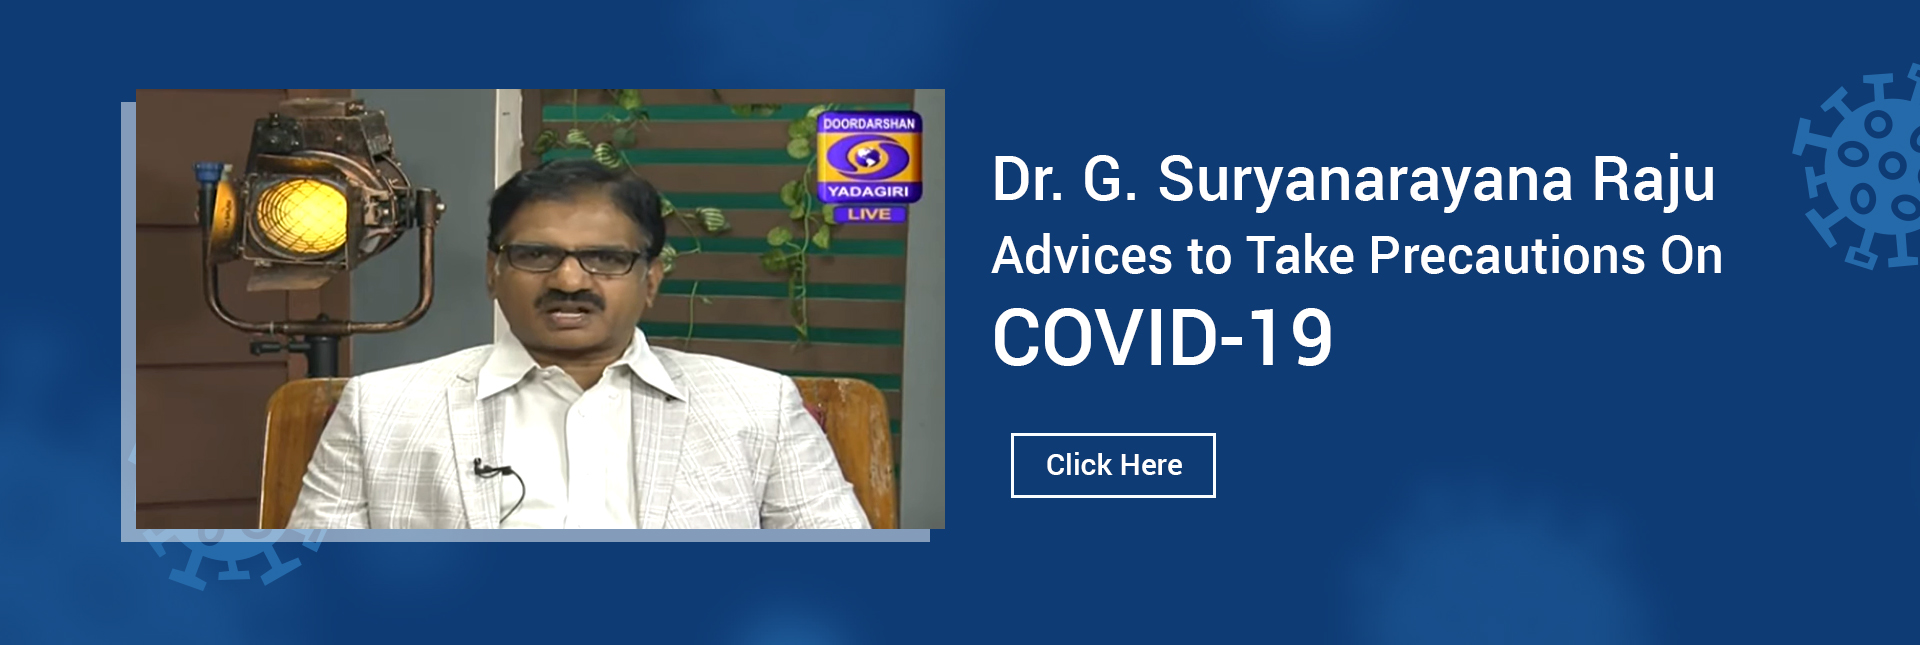 Dr-g-suryanarayana-raju-Advices-to-Take-Precautions-on-Covid-19